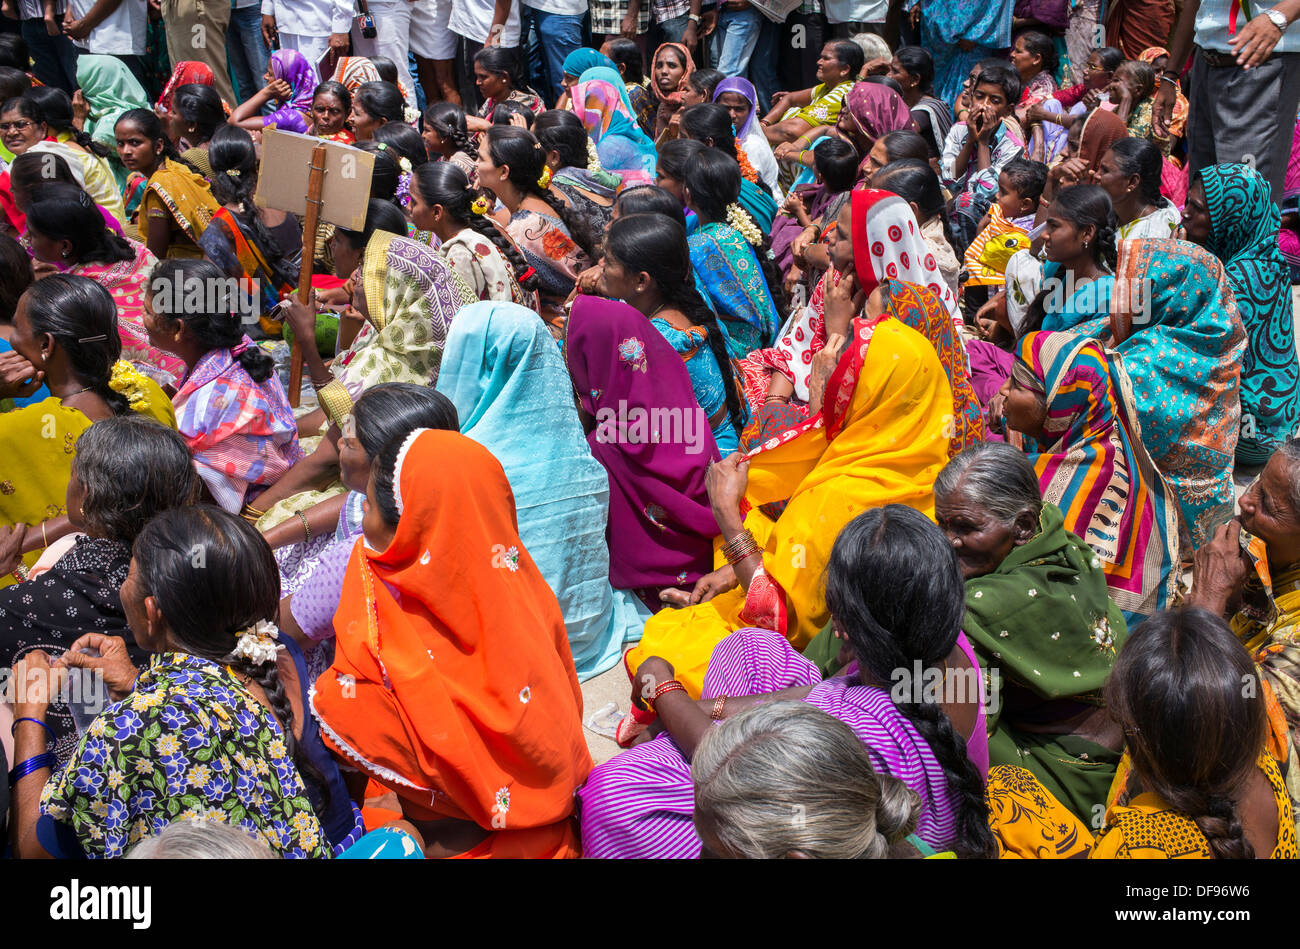 Indian women at a protest rally against against the creation of the new state of Telangana. Puttaparthi, Andhra Pradesh, India - Stock Image